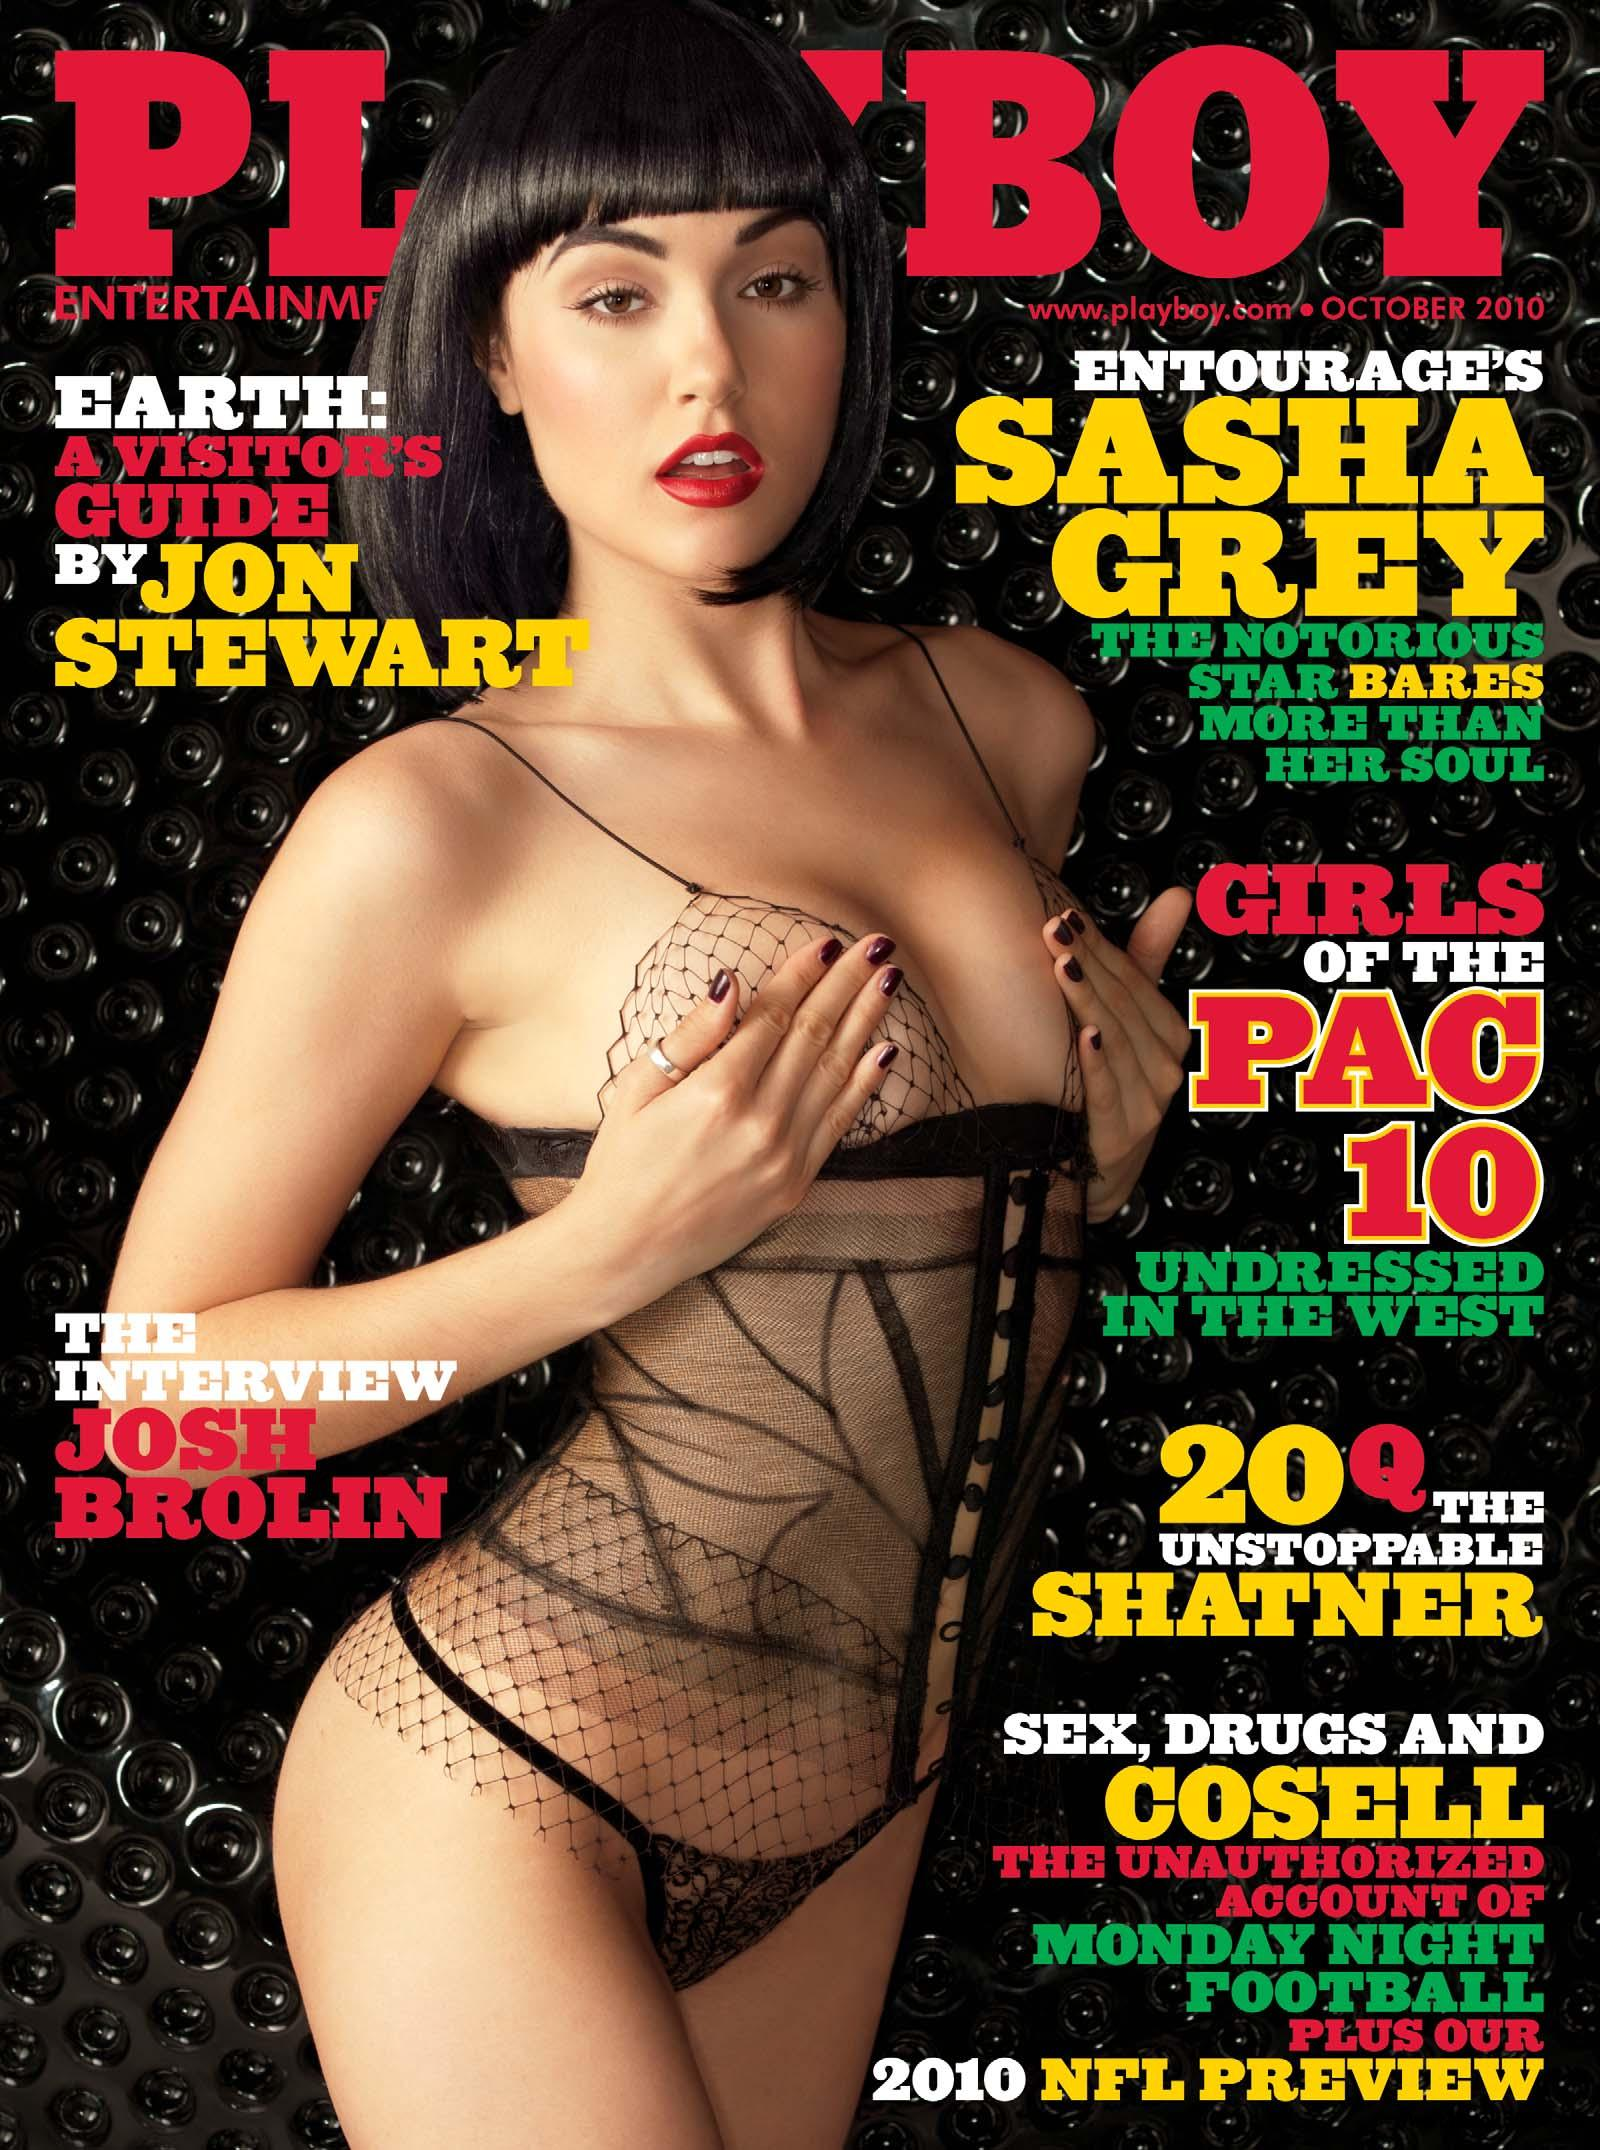 Playboy USA - October 2010 free download